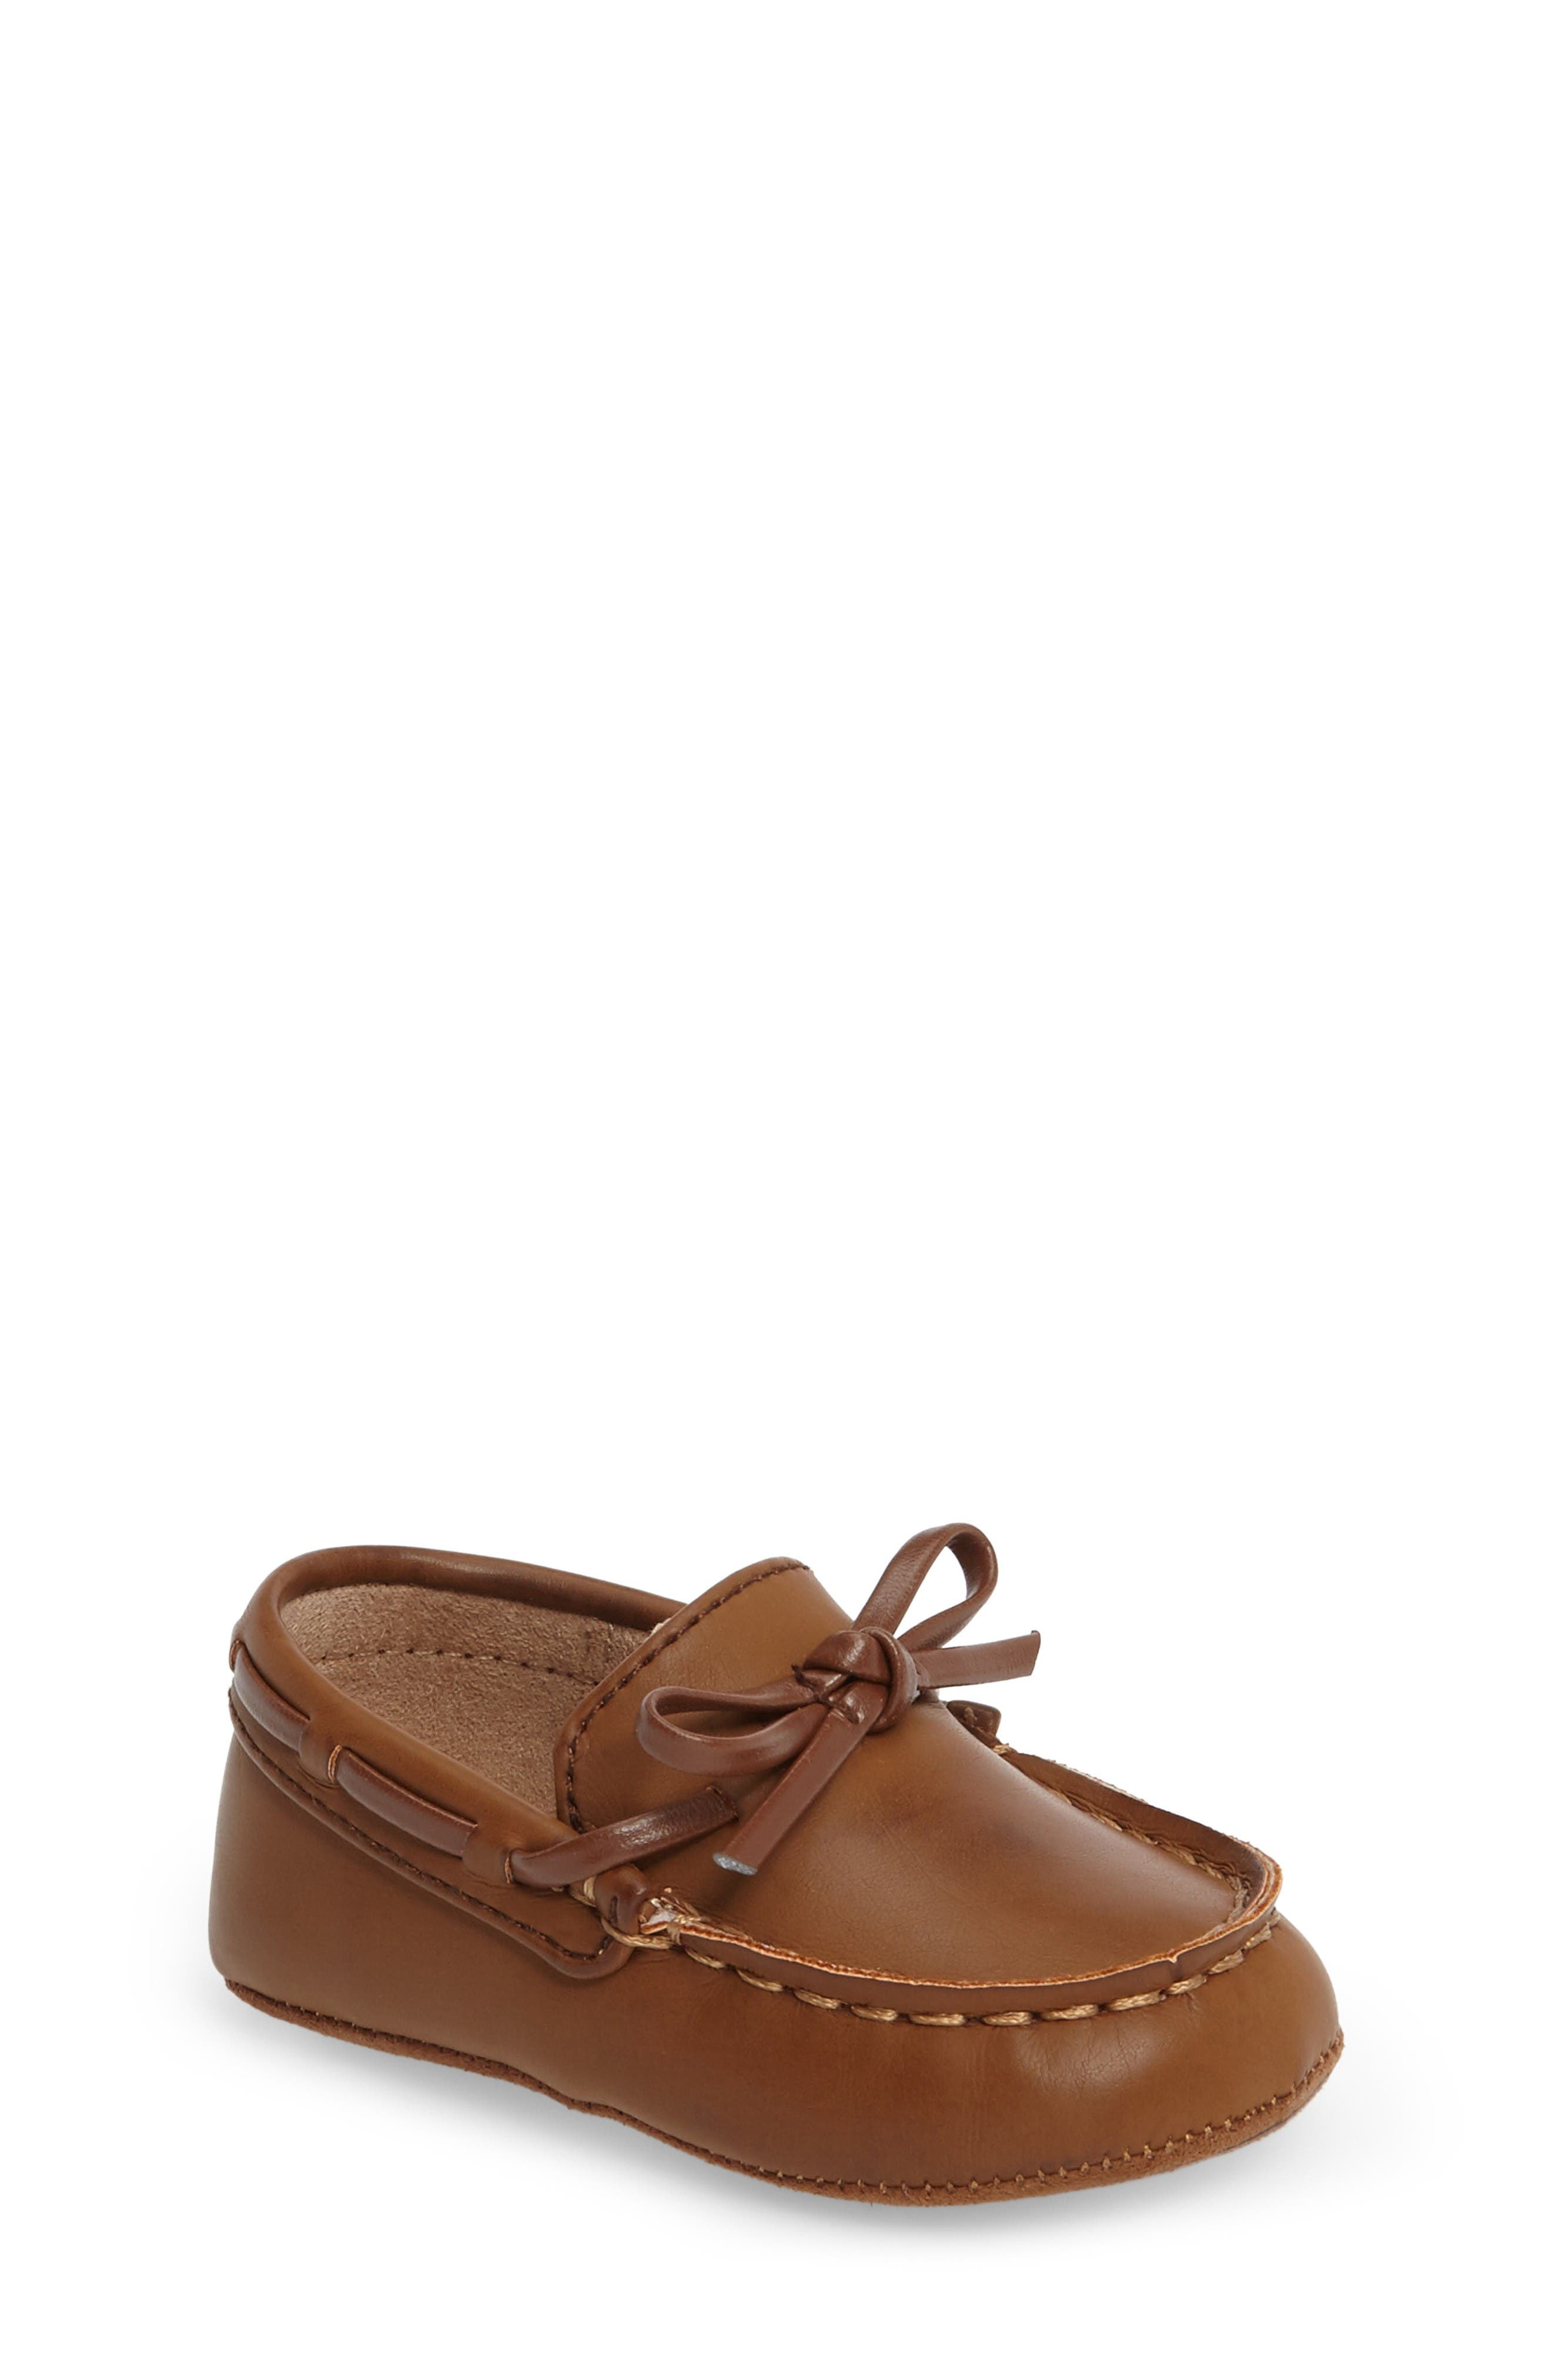 Baby Boat Shoe,                             Main thumbnail 1, color,                             Caramel